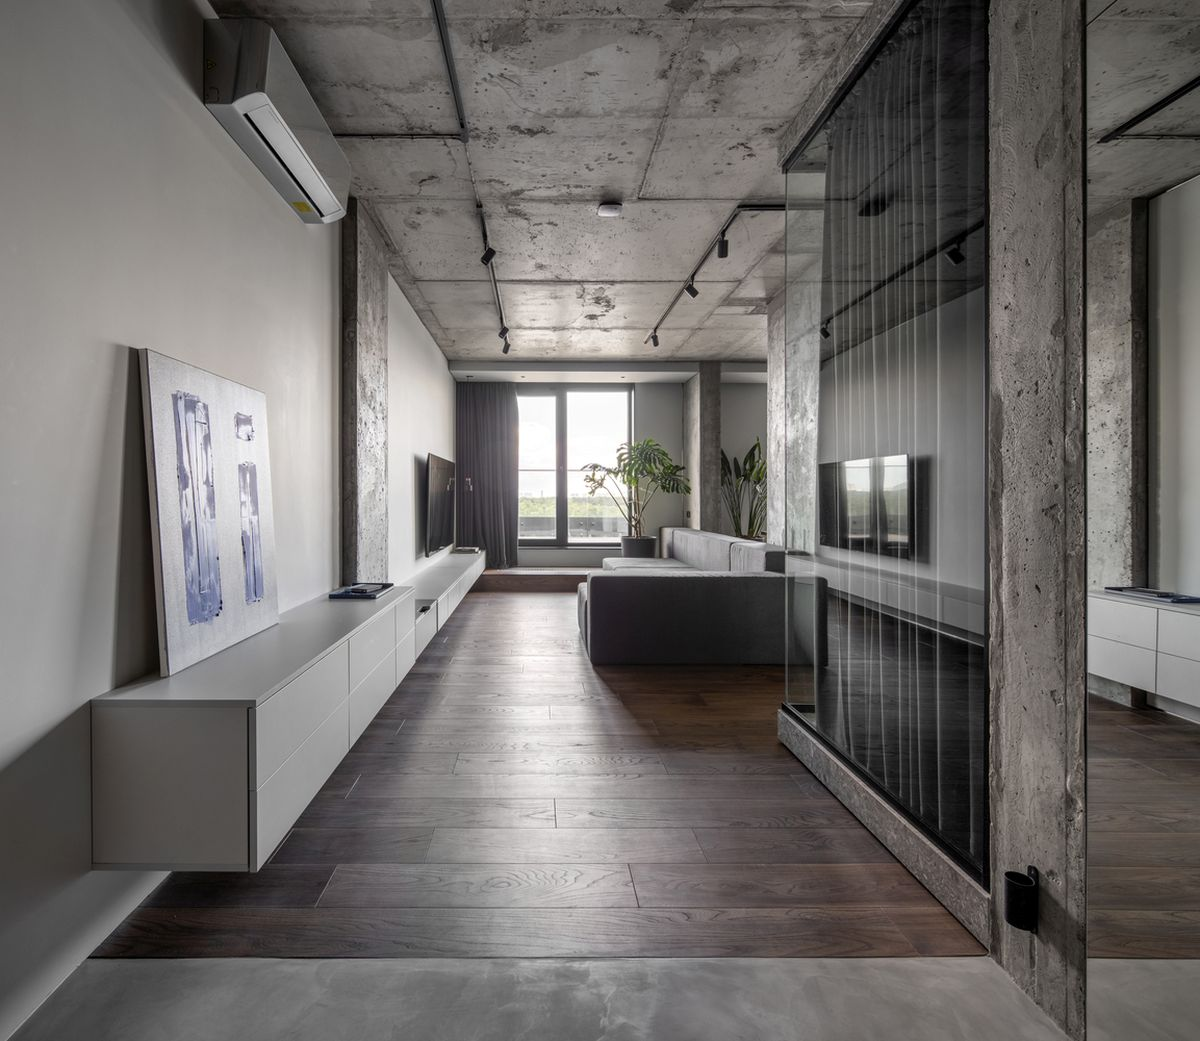 The exposed concrete surface add an industrial element to the overall design of this place